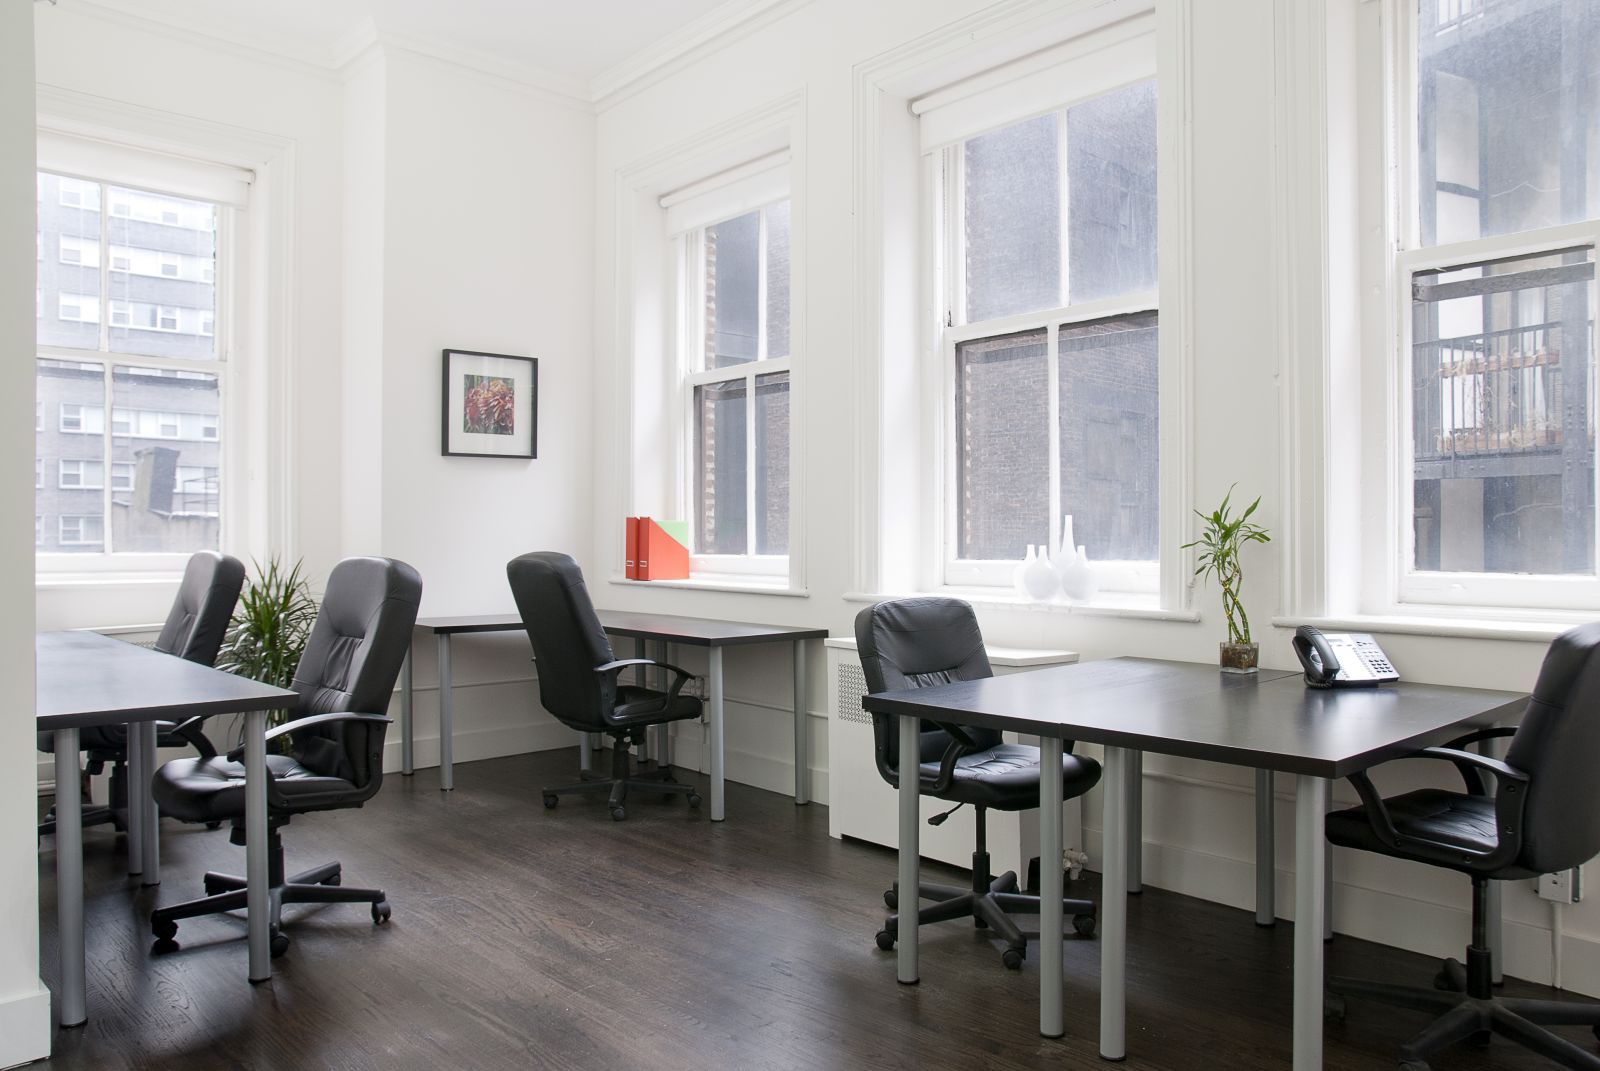 Gravel Road Business Executive Suites NYC